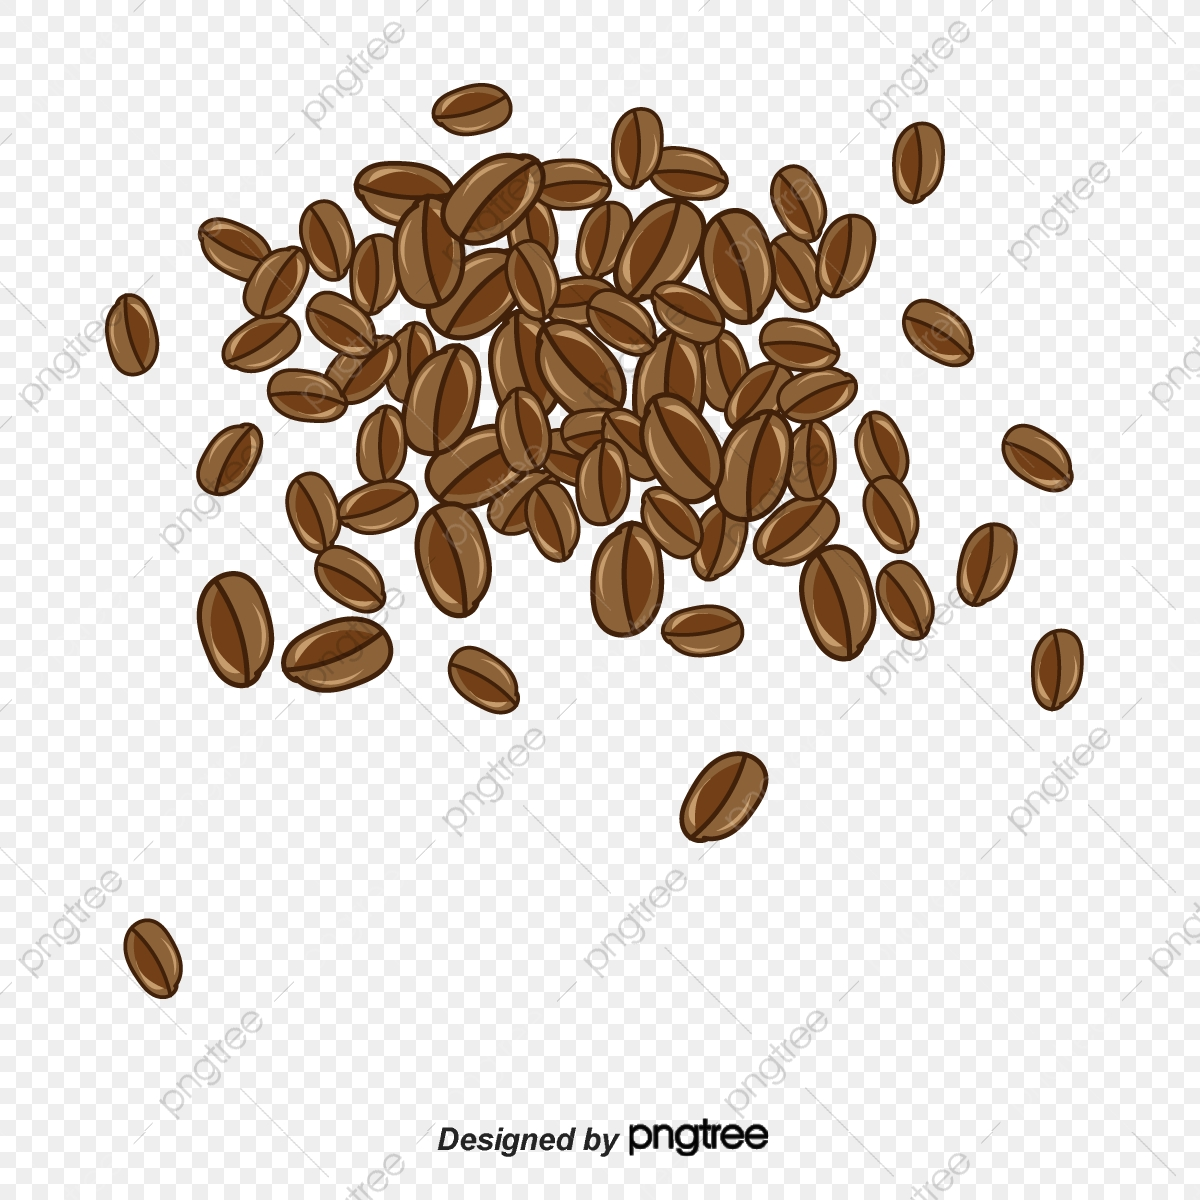 Coffee Beans Coffee Beans Png Transparent Clipart Image And Psd